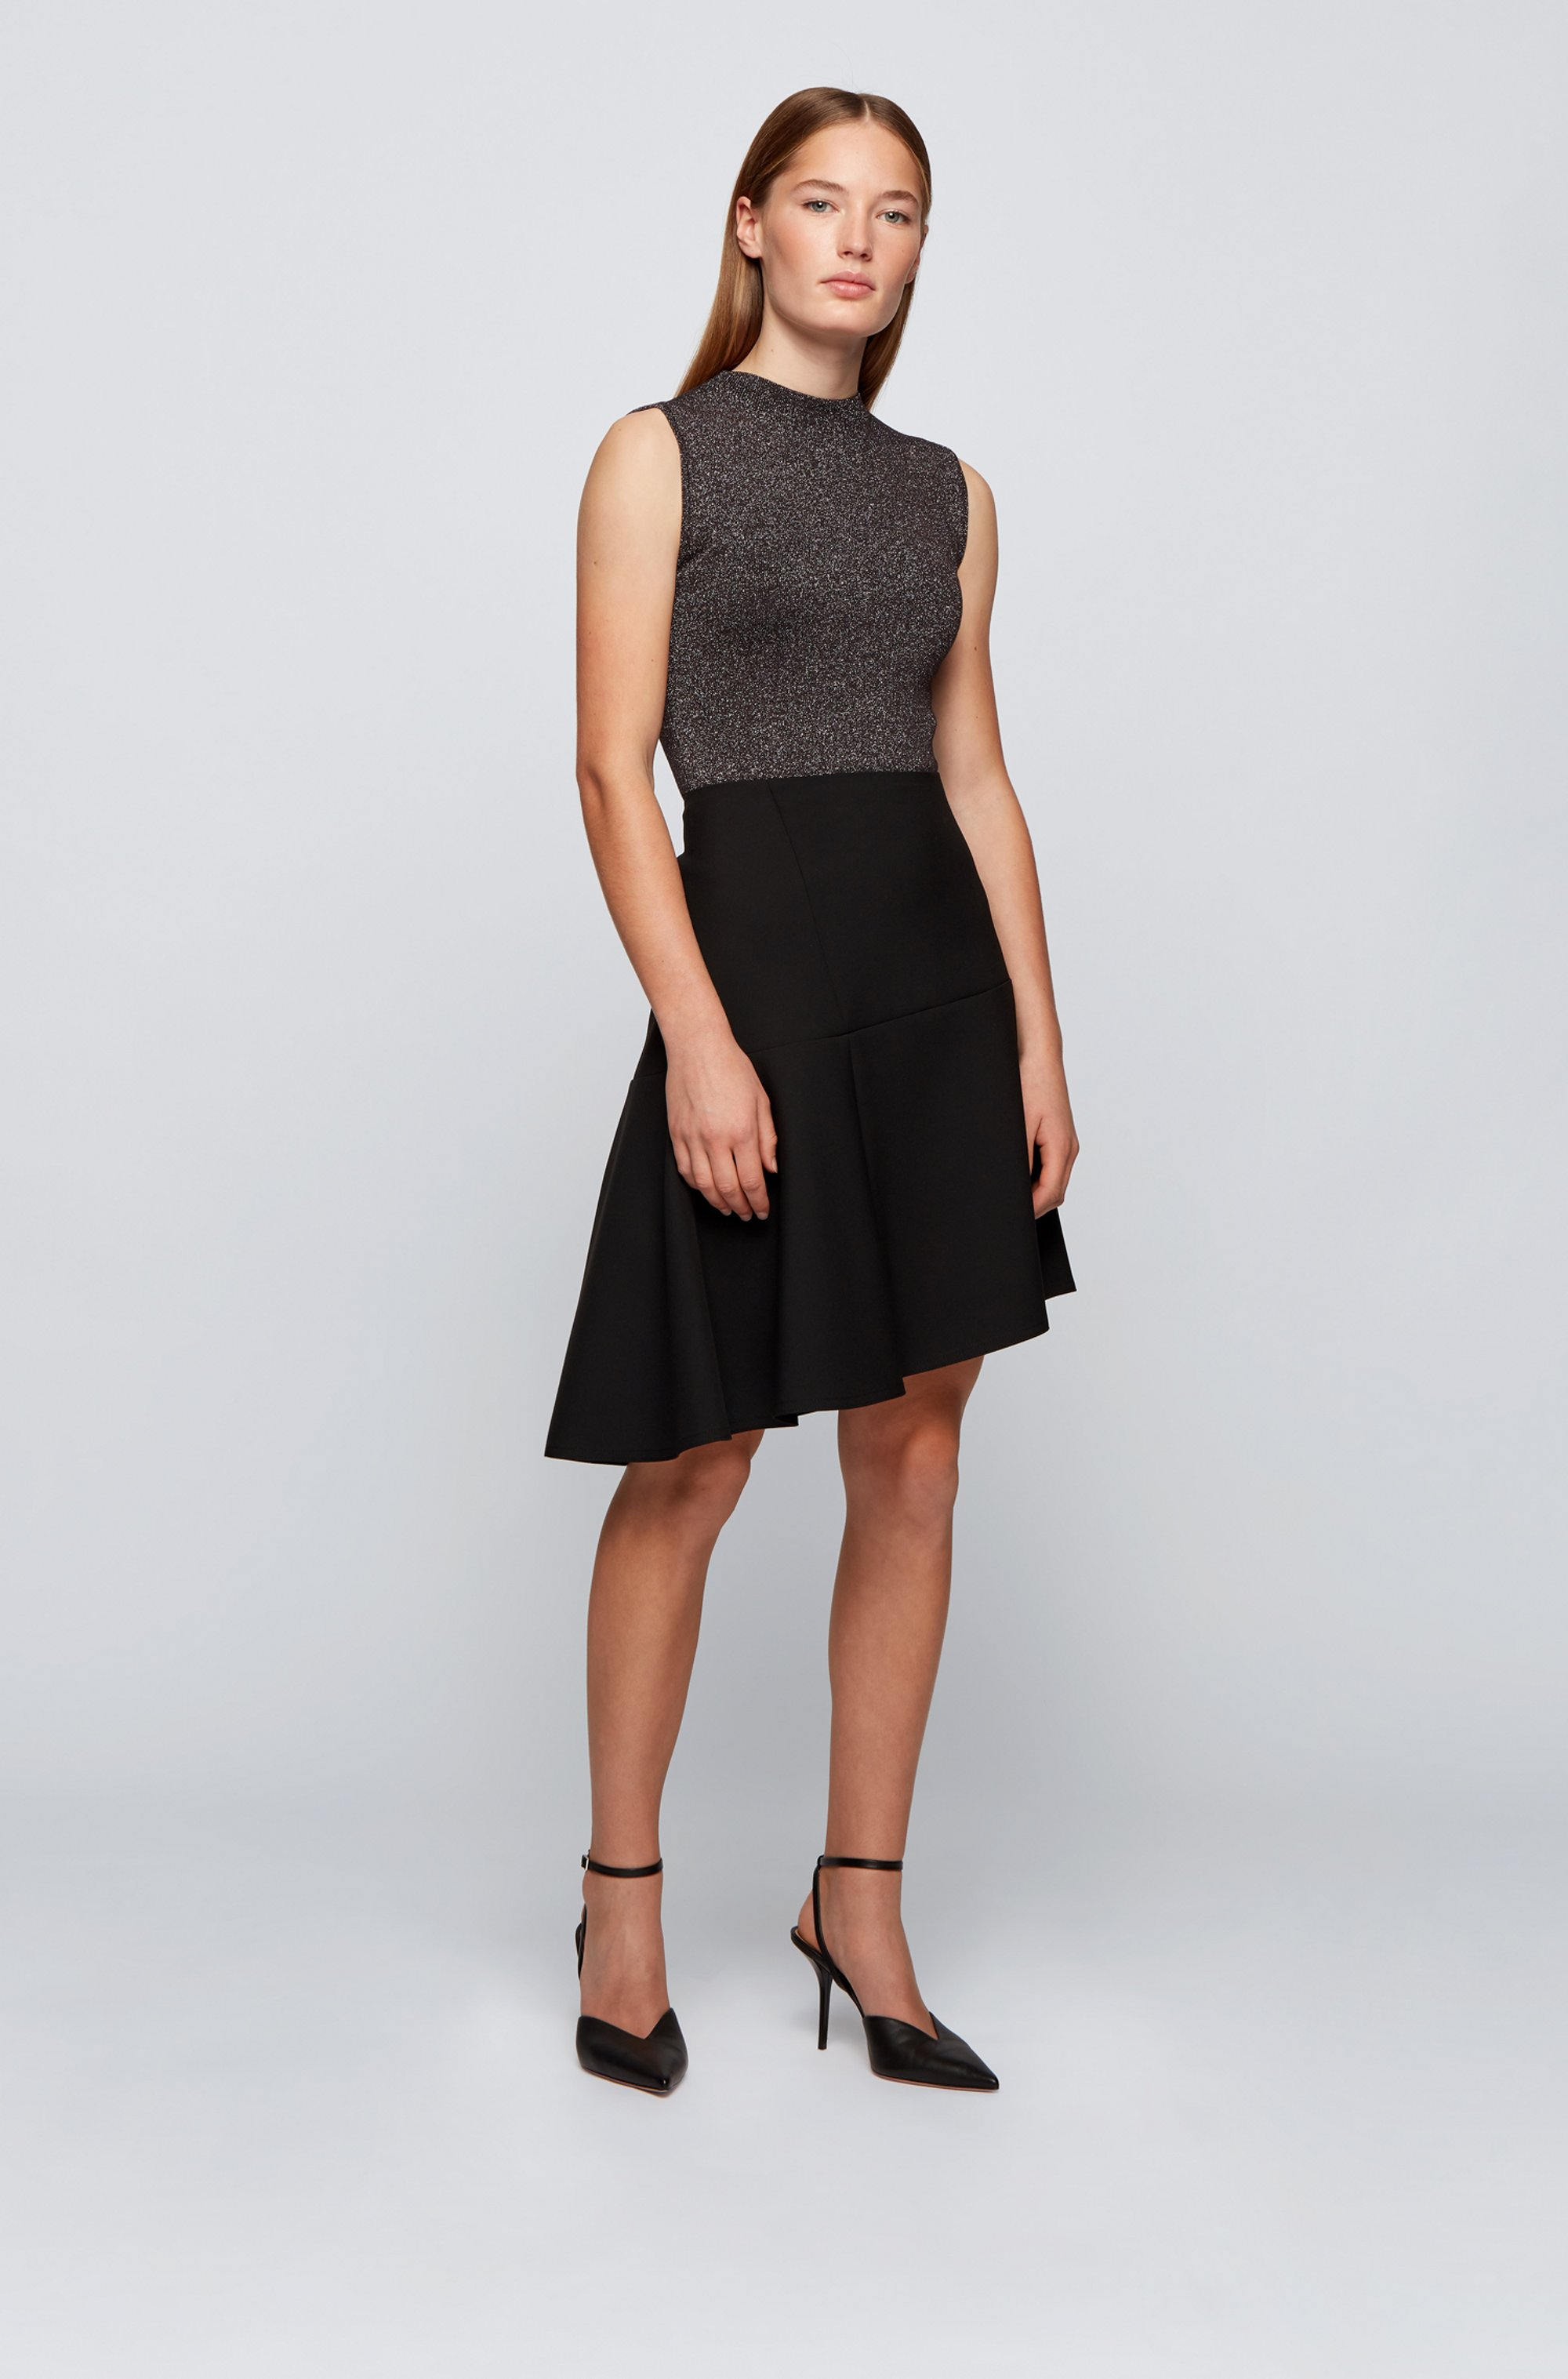 Mock-neck sleeveless top in a lustrous wool blend